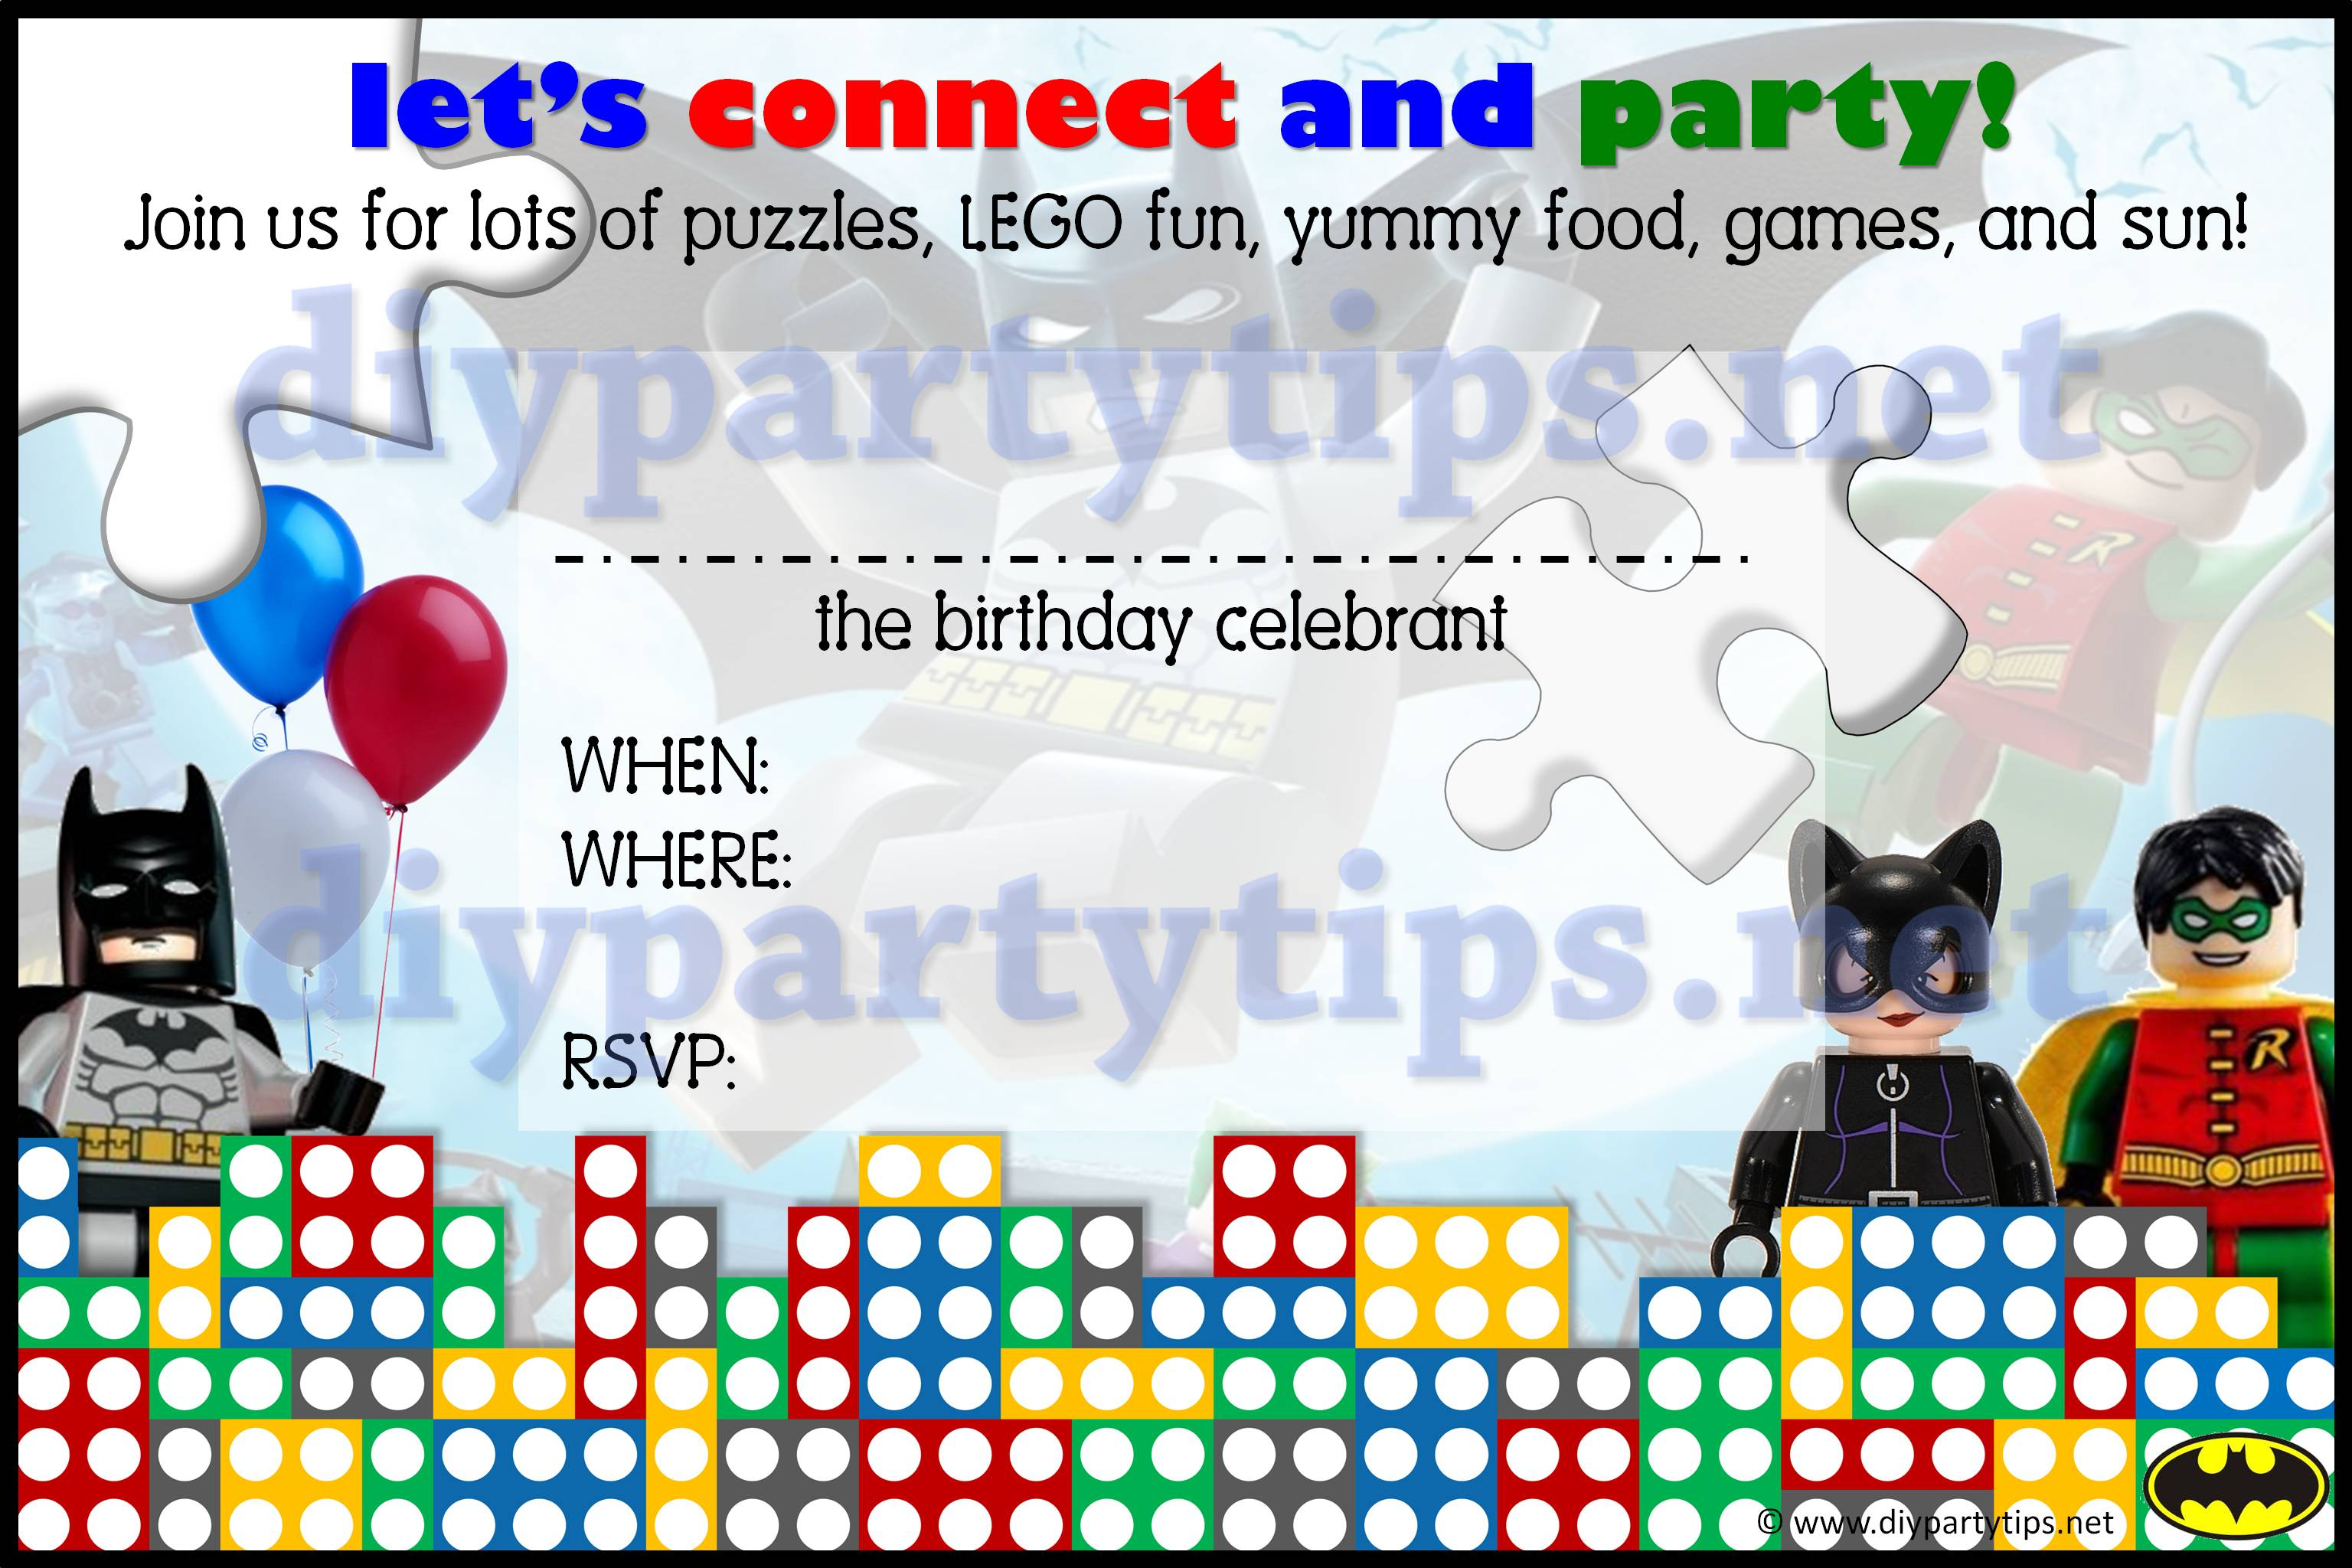 Free printable lego party invitation lolas diy party tips lego birthday invitation template lolas diy party tips watermark filmwisefo Images